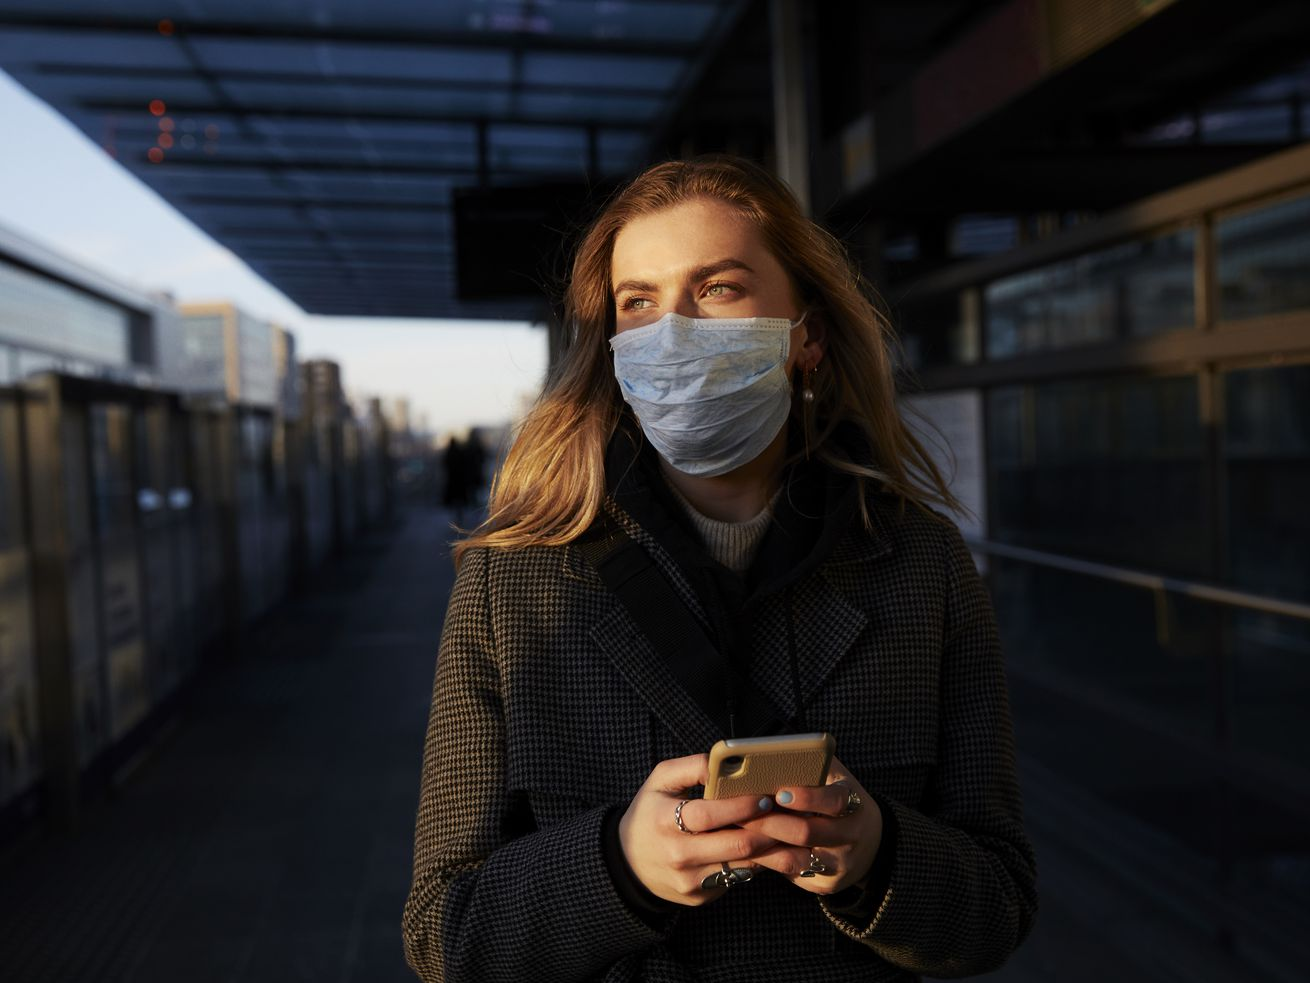 A person wearing a breathing mask holds a cellphone while standing on a city street.